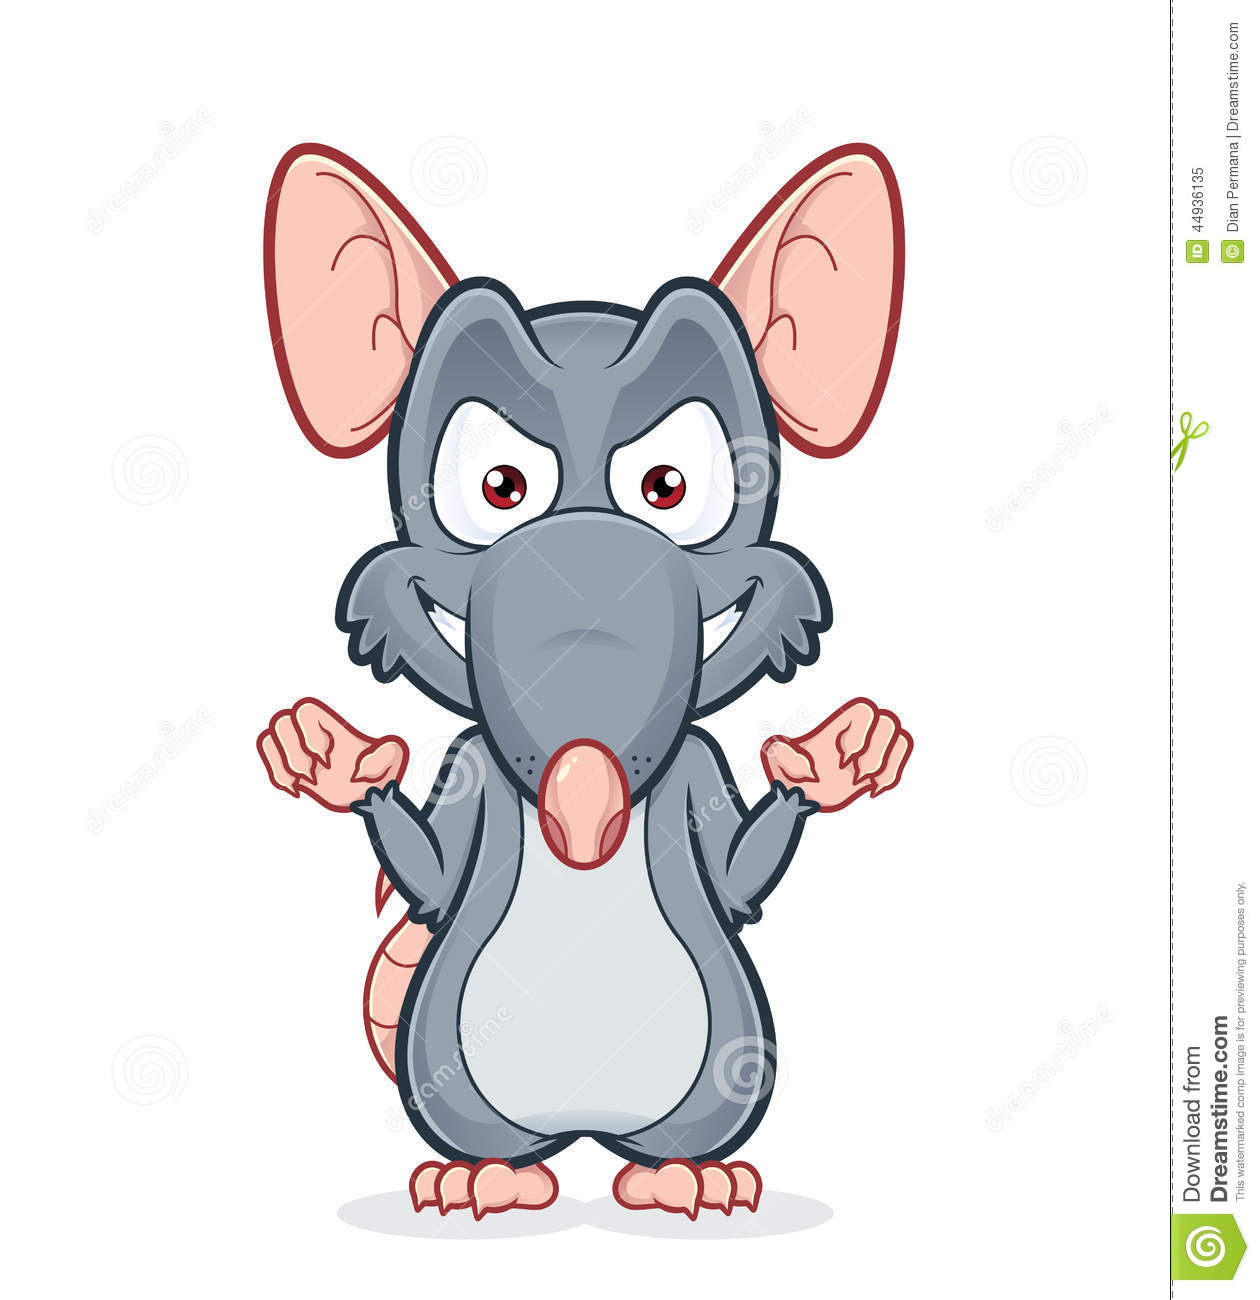 Evil Rat Stock Vector - Image: 44936135